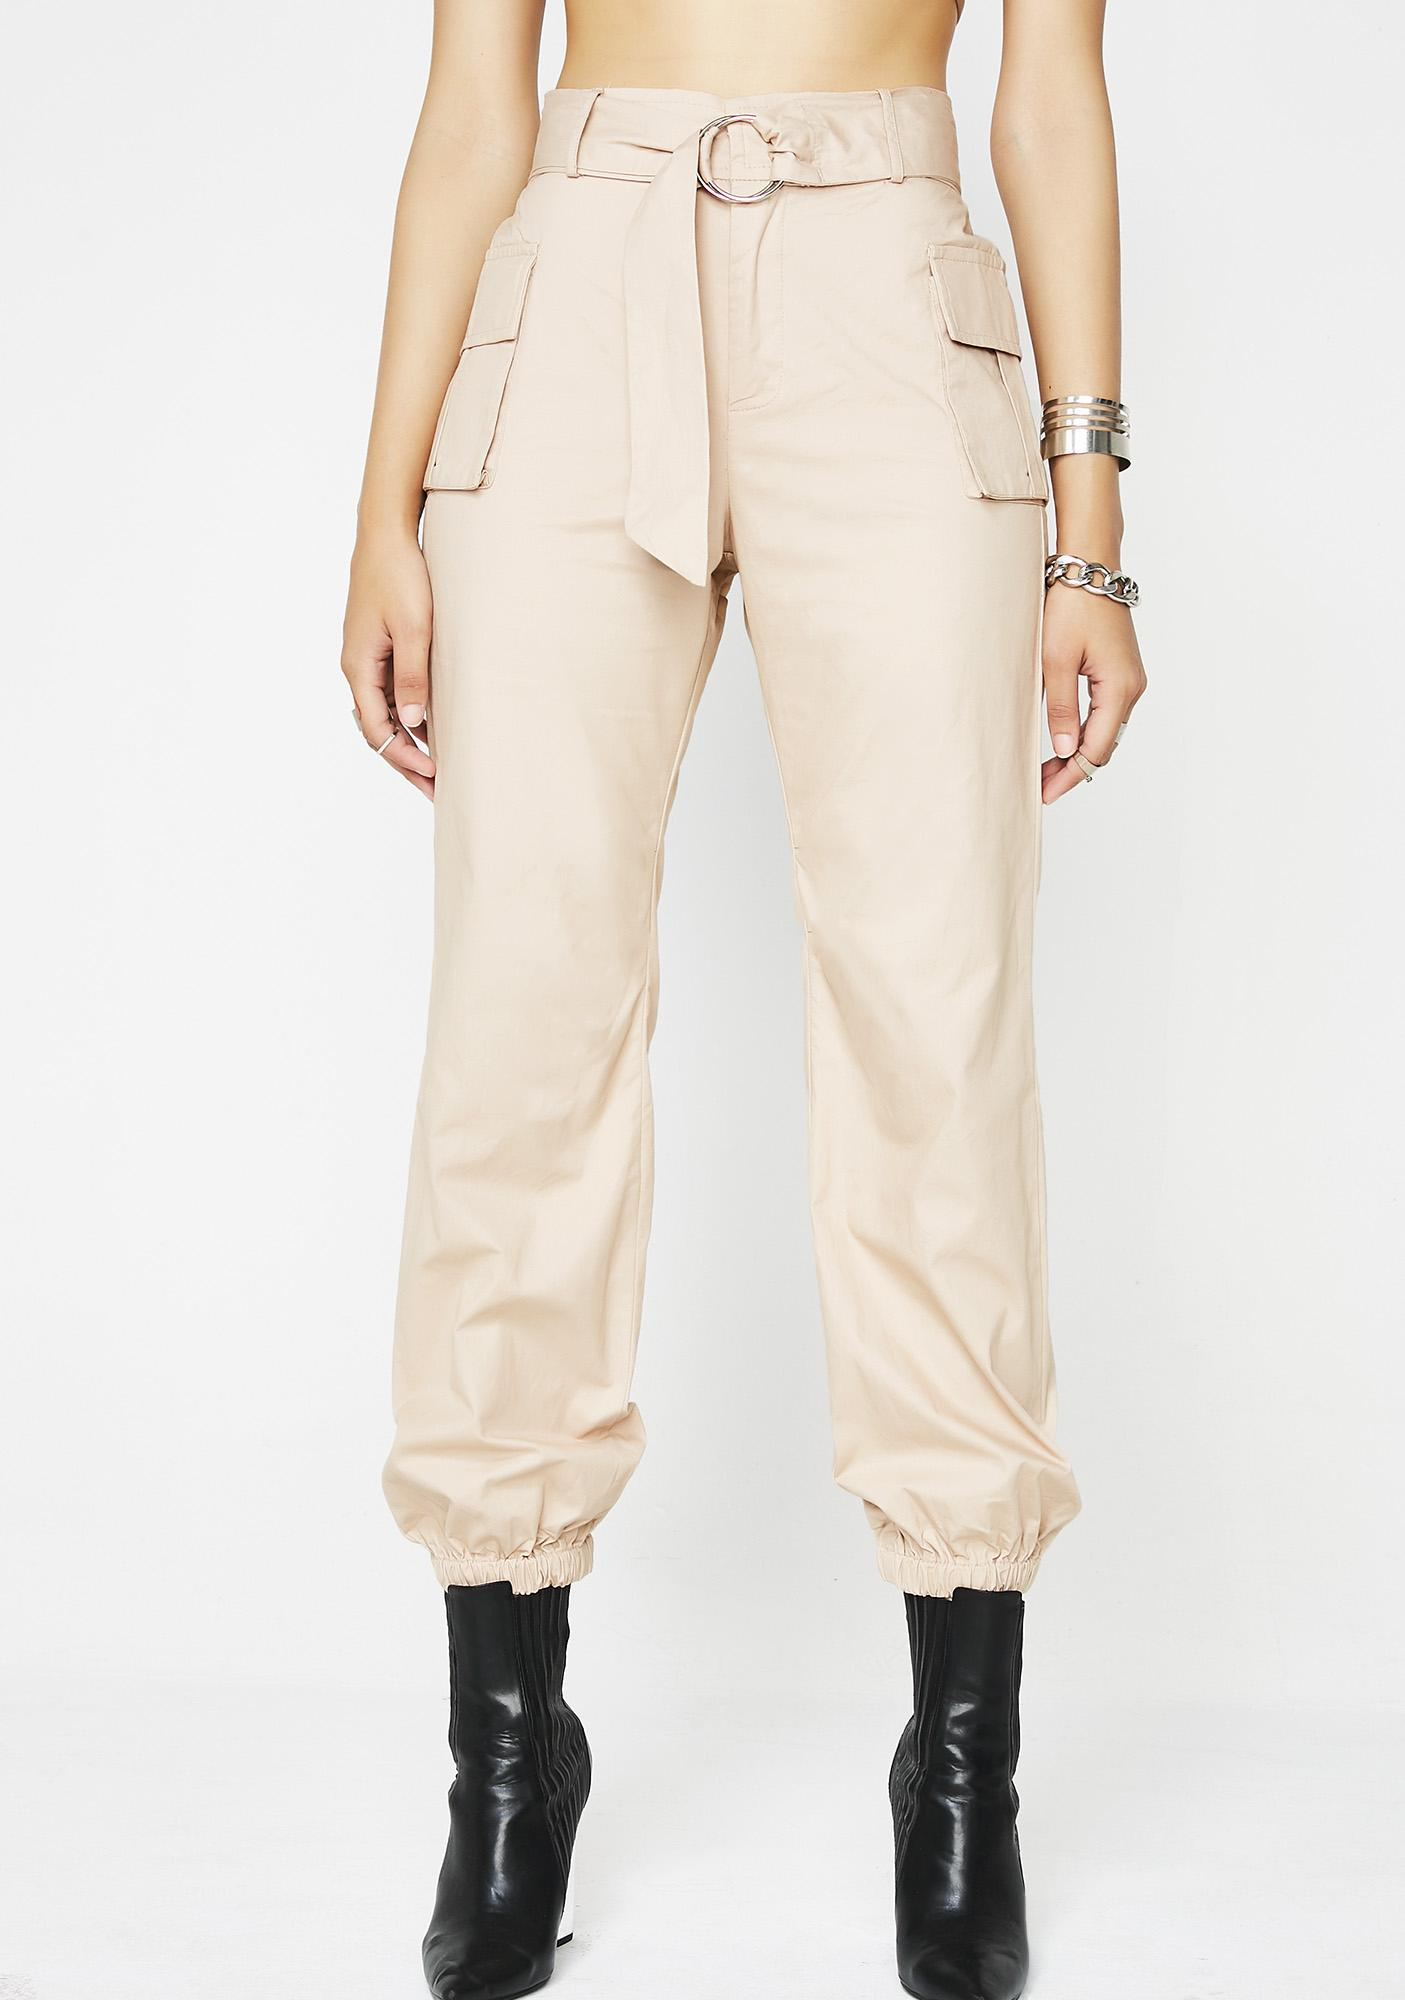 High Profile Cargo Pants by Blue Blush